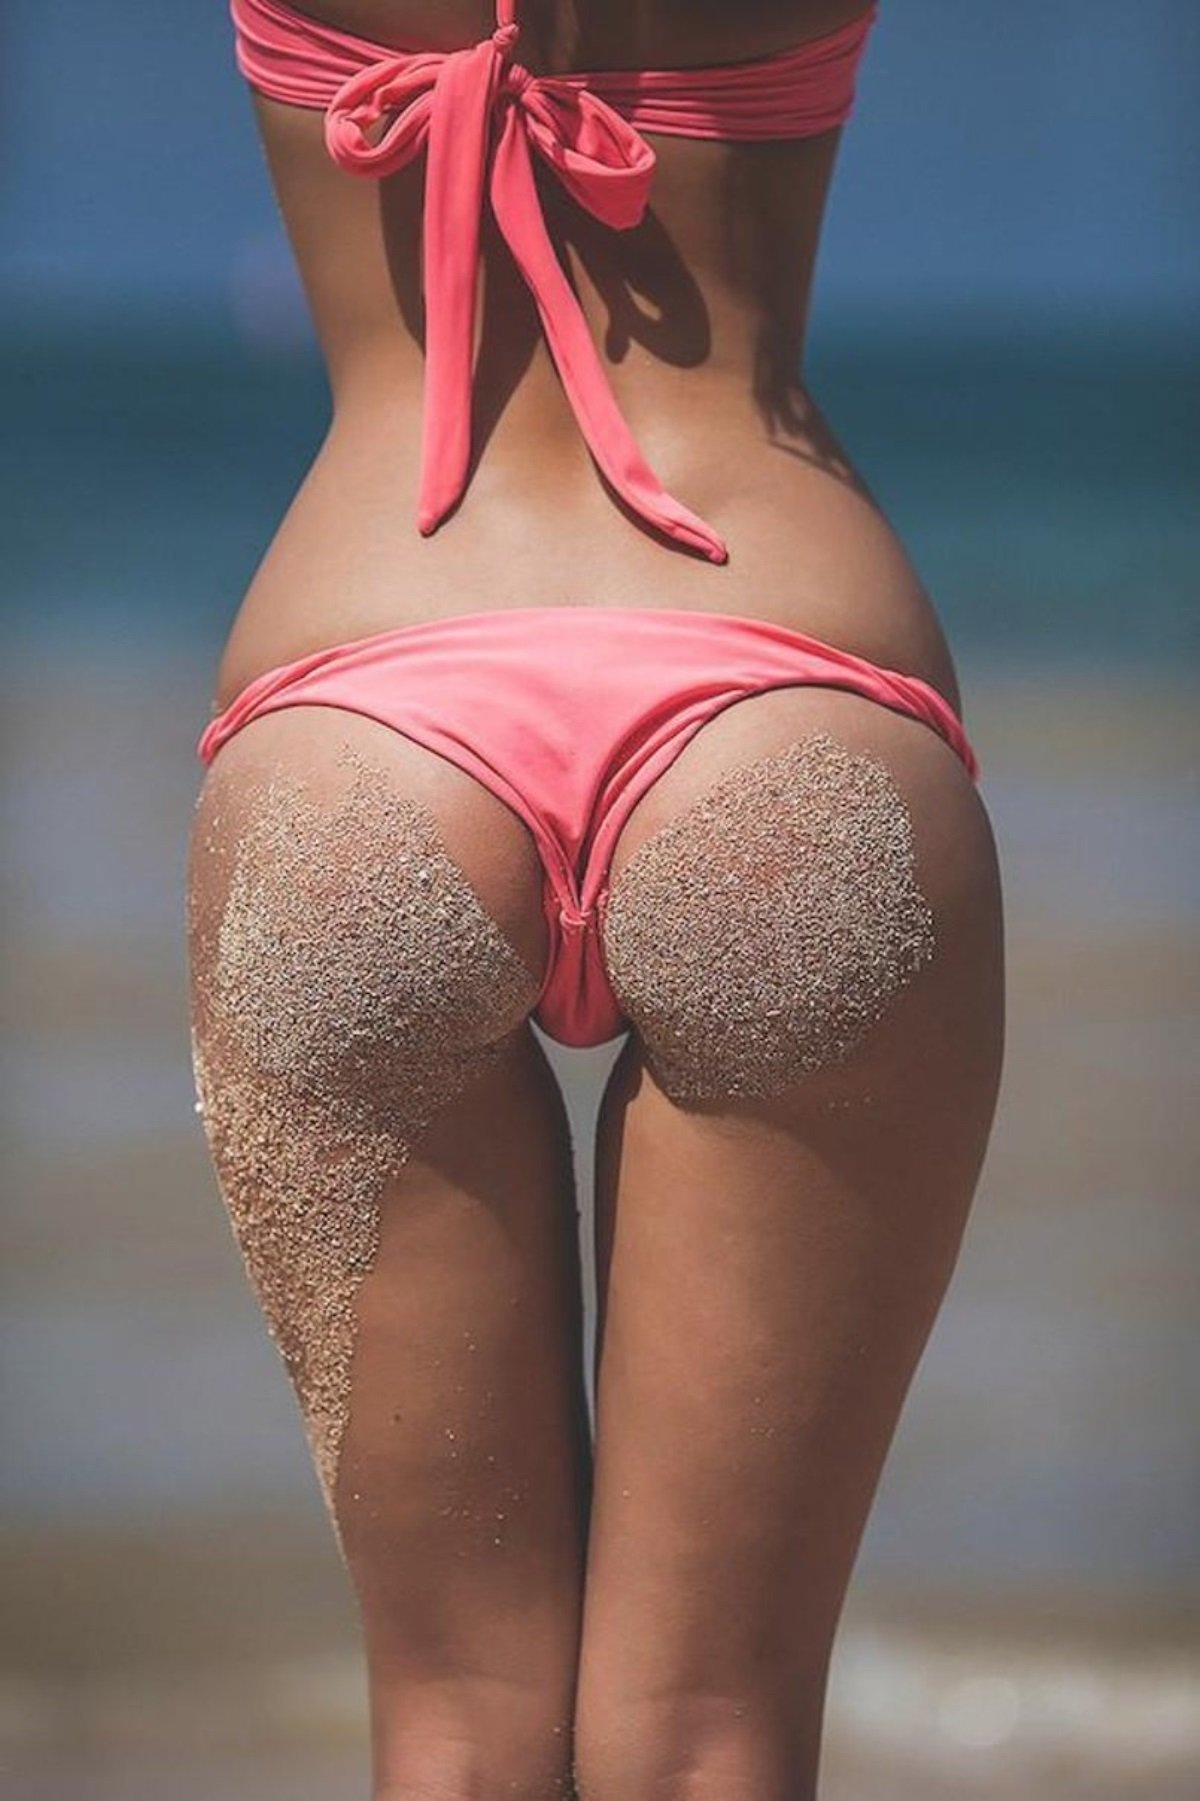 Pictures of girls butt cheeks — photo 5